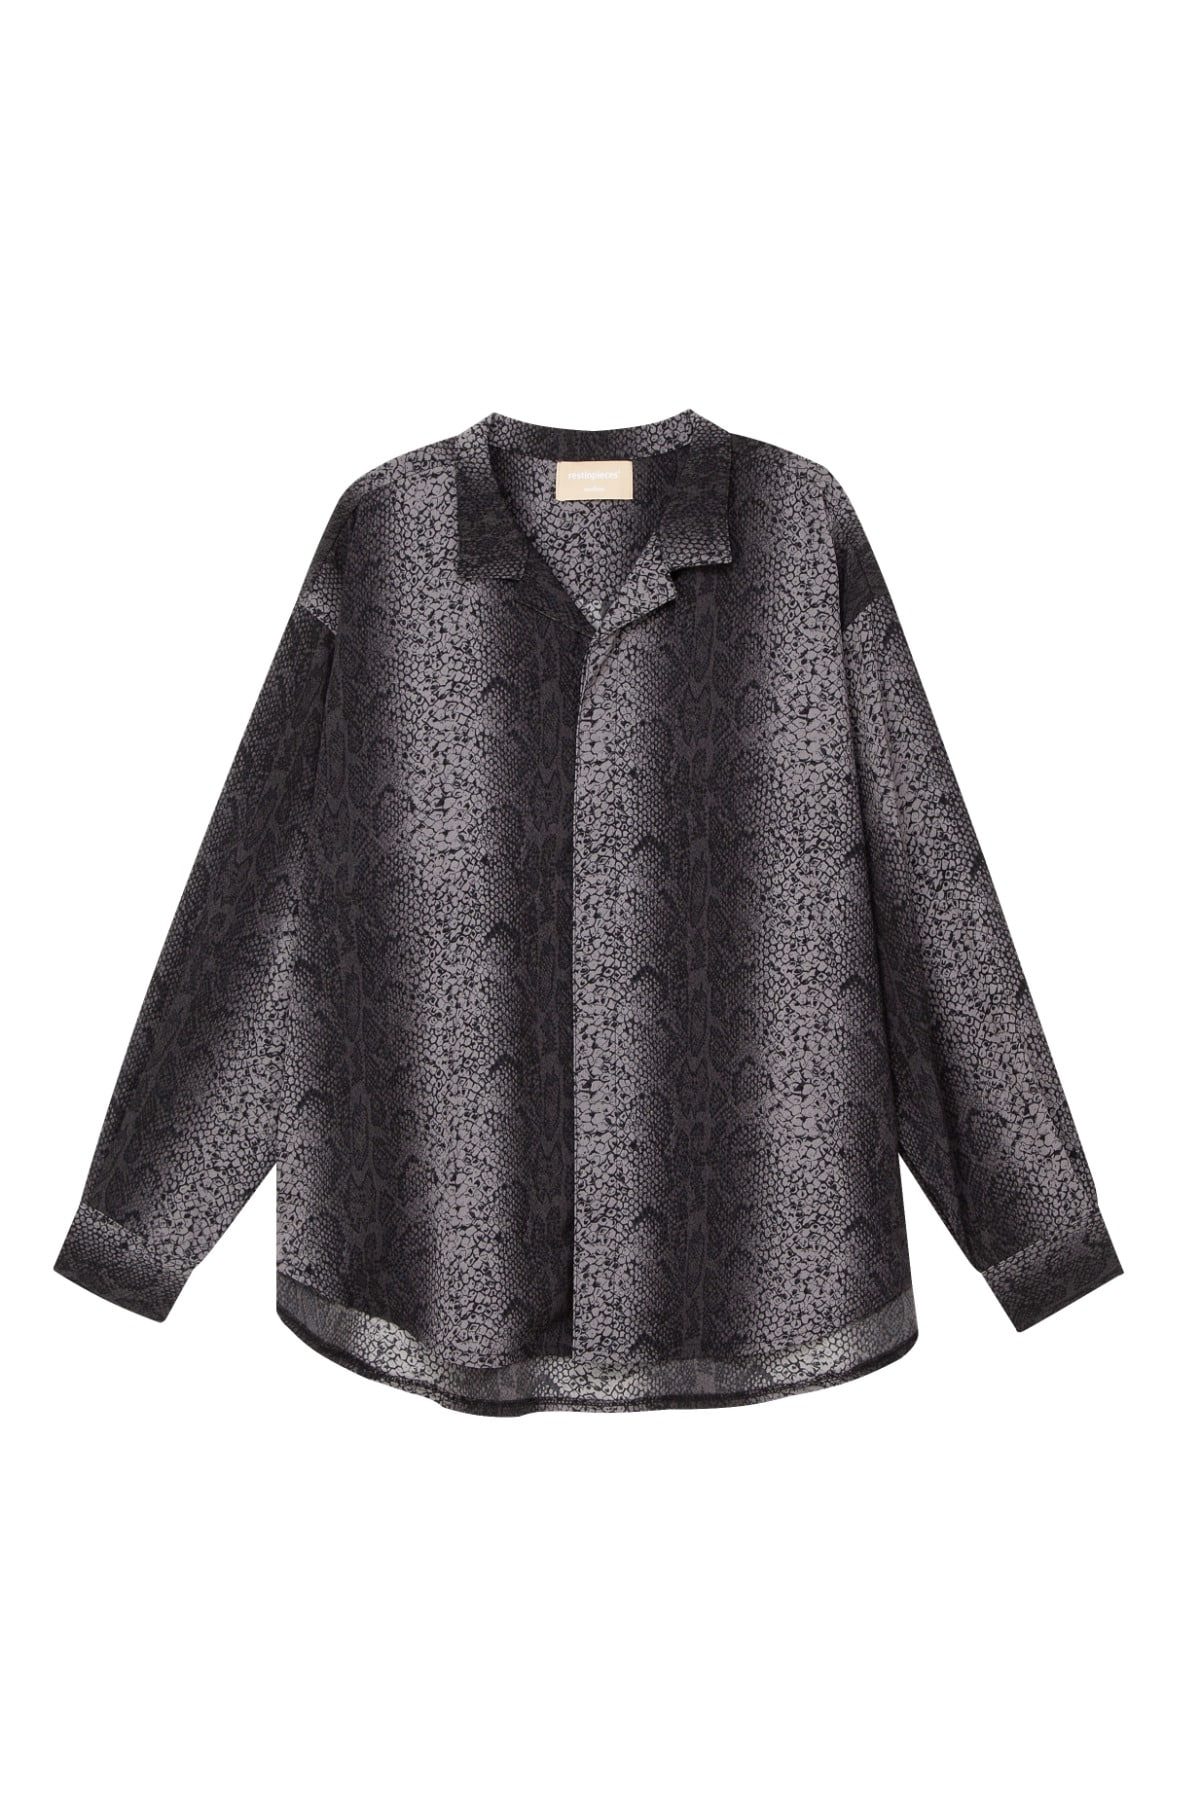 python patterned long sleeve shirt